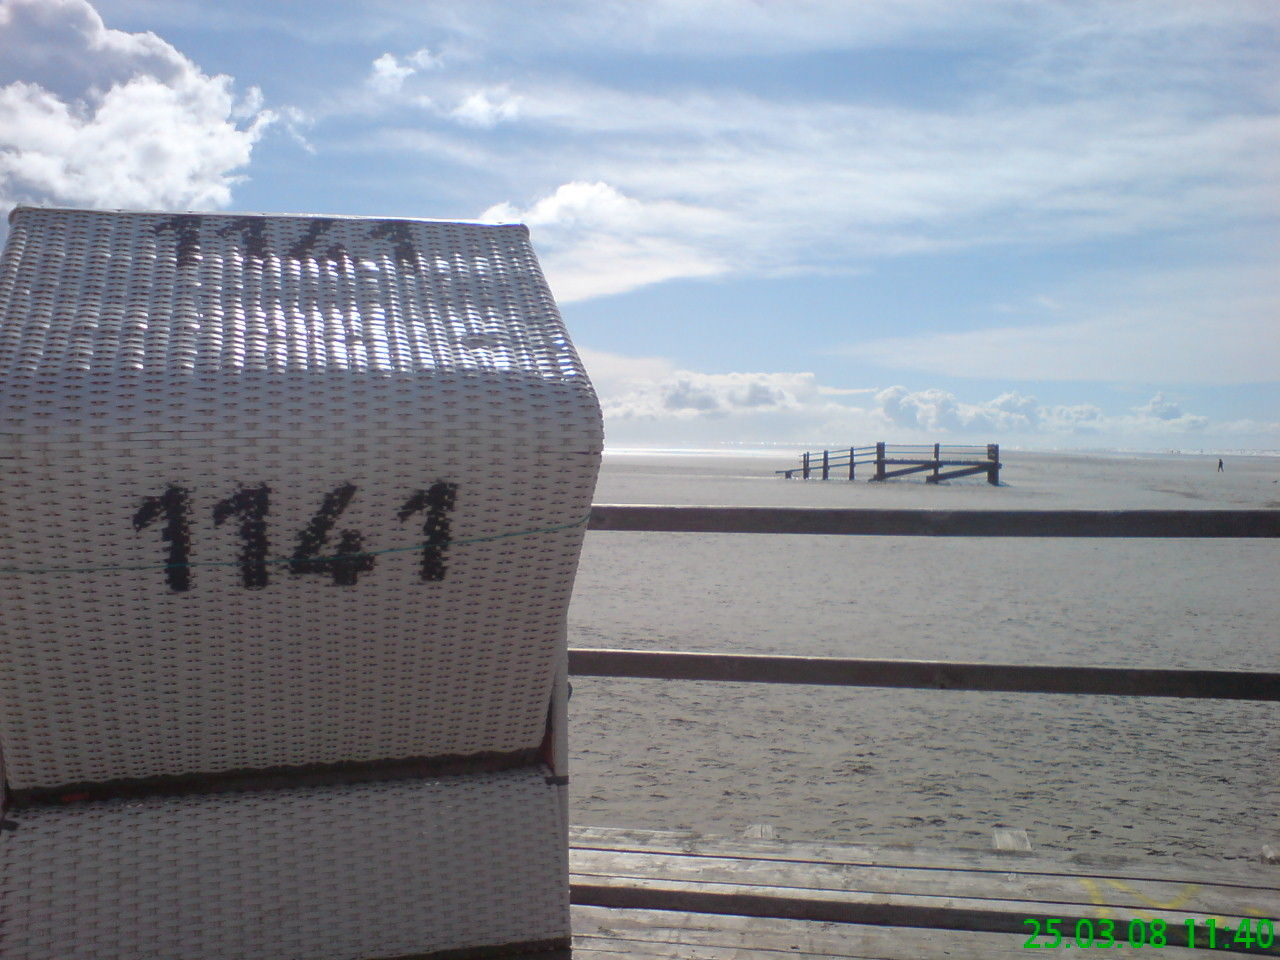 St. Peter Ording, day at the beach Beach Beachchair Beauty In Nature Chilling Cloud - Sky Day Germany Holiday Horizon Over Water Landscape Nature No People Number Outdoors Relax Sea Silence Sky St. Peter Ording Summer Summertime Text Vacations Water Weekend